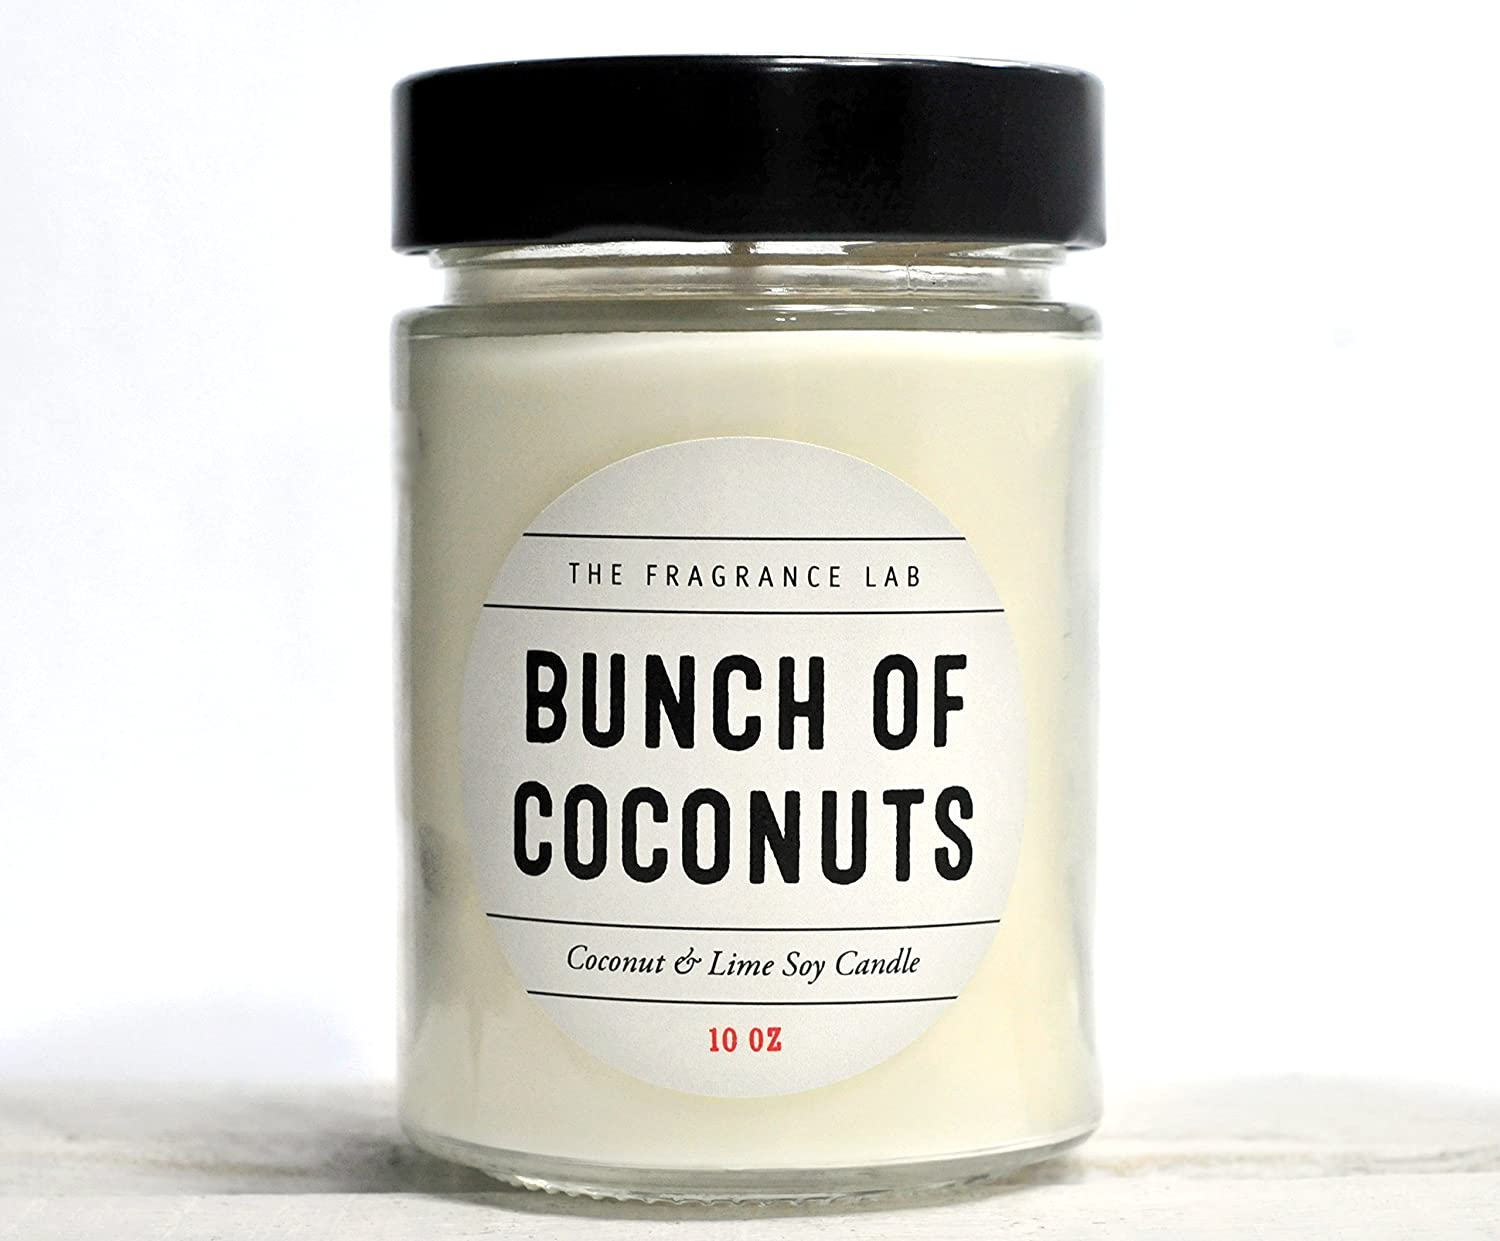 Soy Candles -Bunch of Coconuts Coconut Lime Scented | The Fragrance Lab